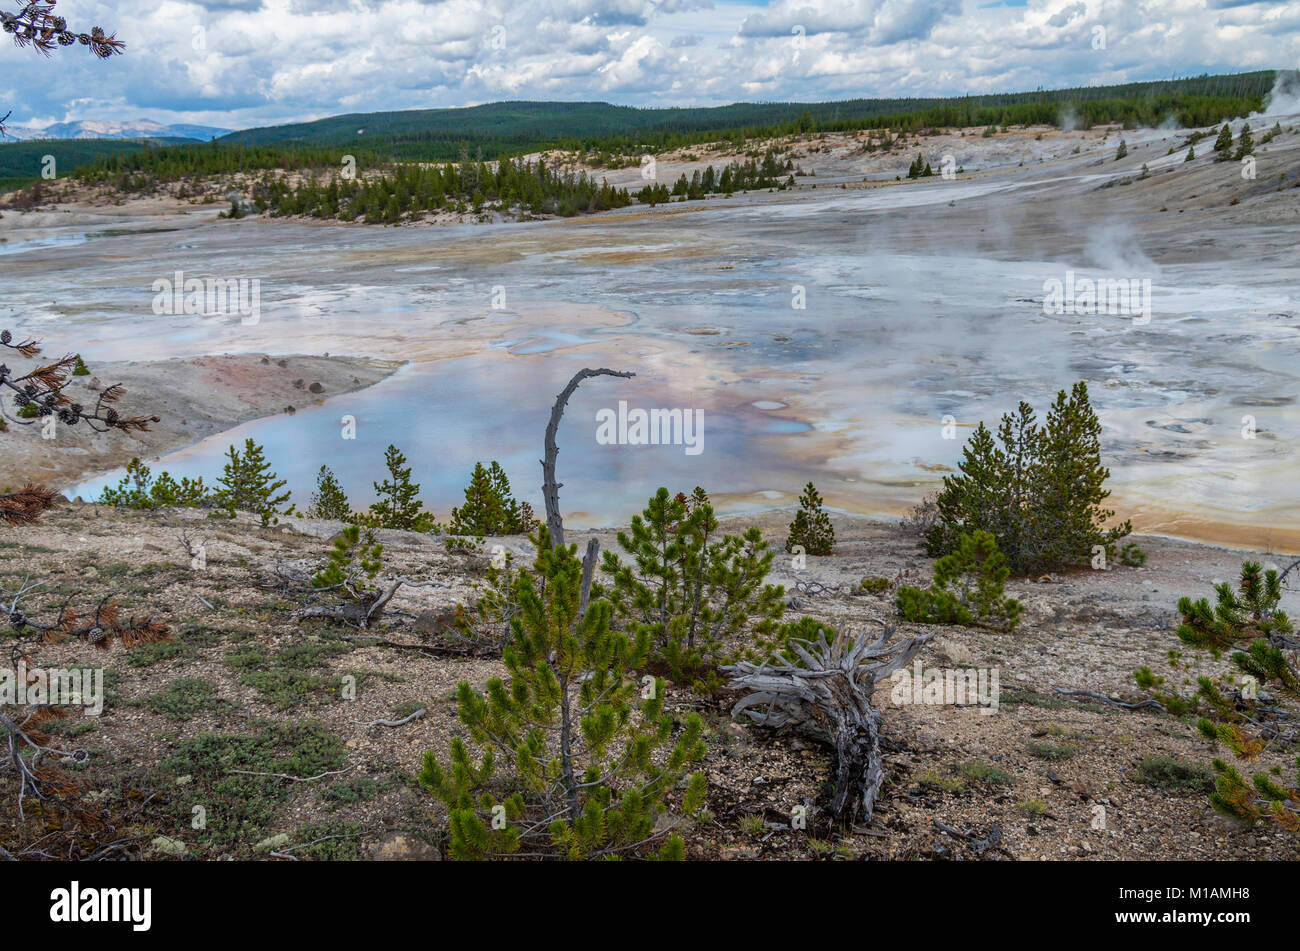 Steam and hot water flowing from the Porcelain Springs in Norris Geyser Basin.  Yellowstone National Park, Wyoming - Stock Image